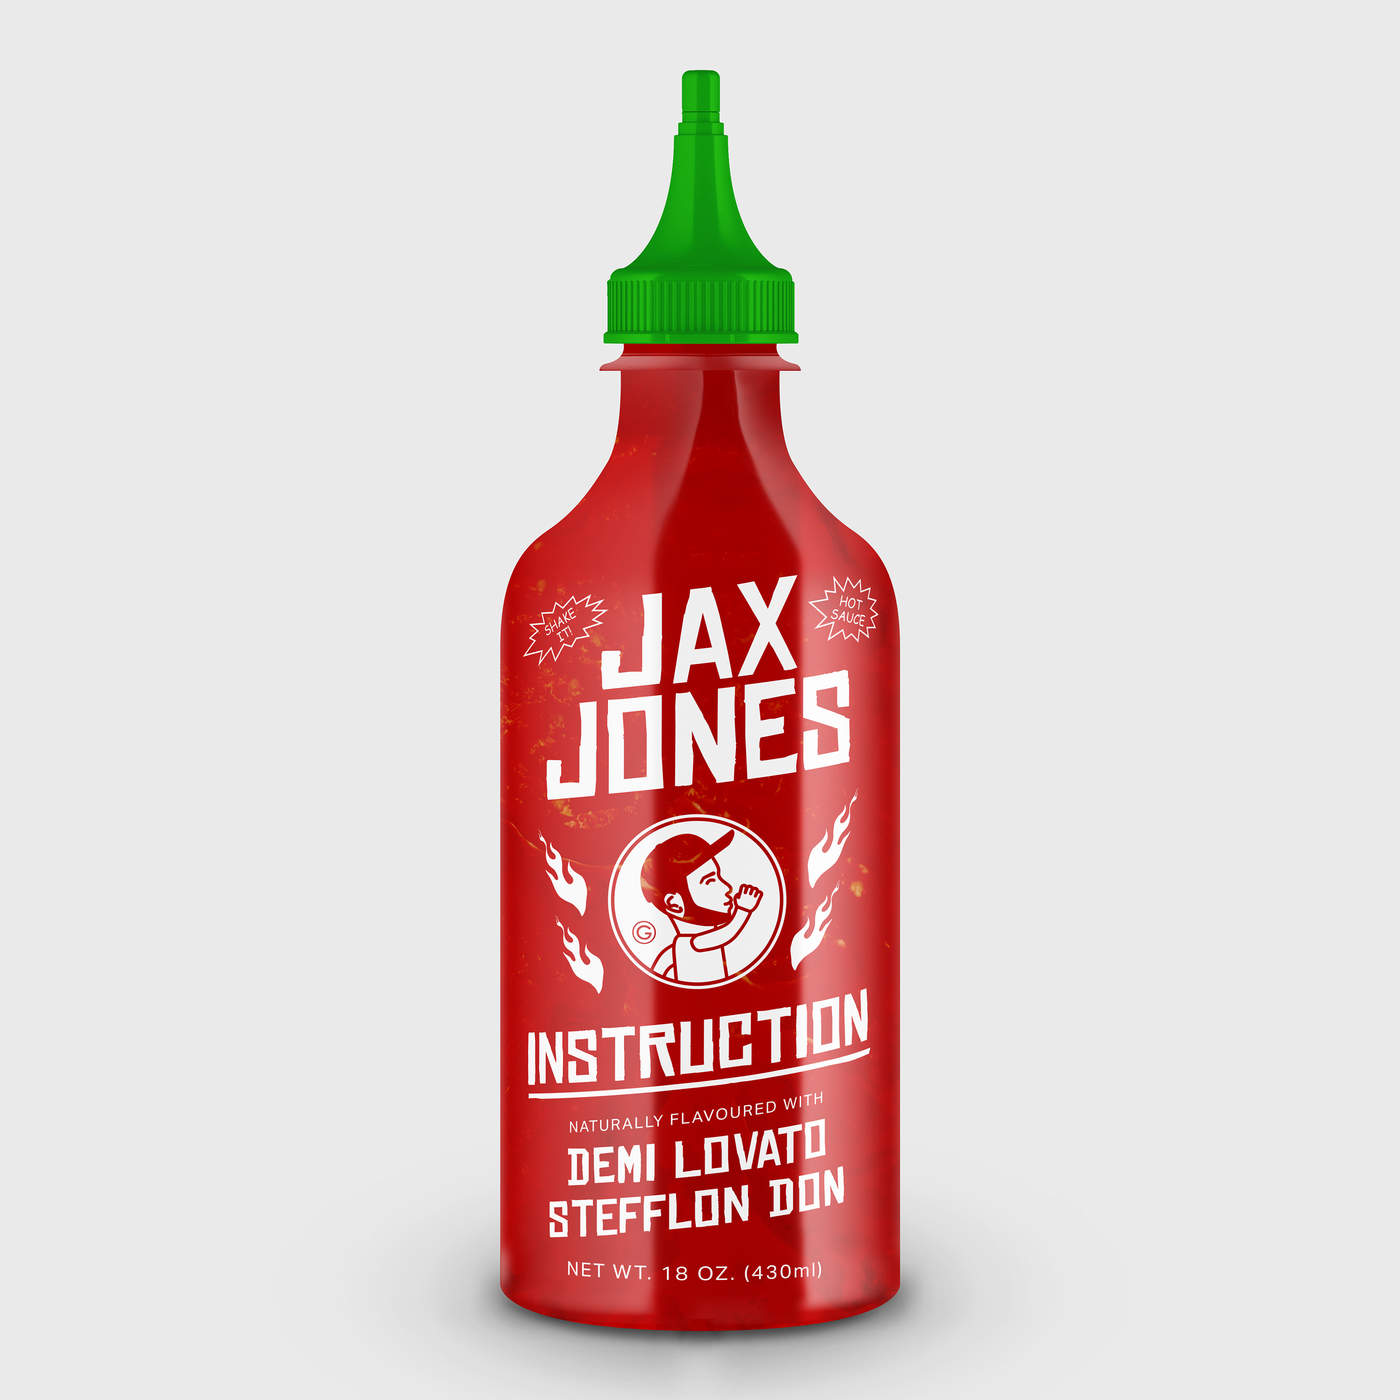 دانلود آهنگ Jax Jones feat. Demi Lovato & Stefflon Don به نام Instruction